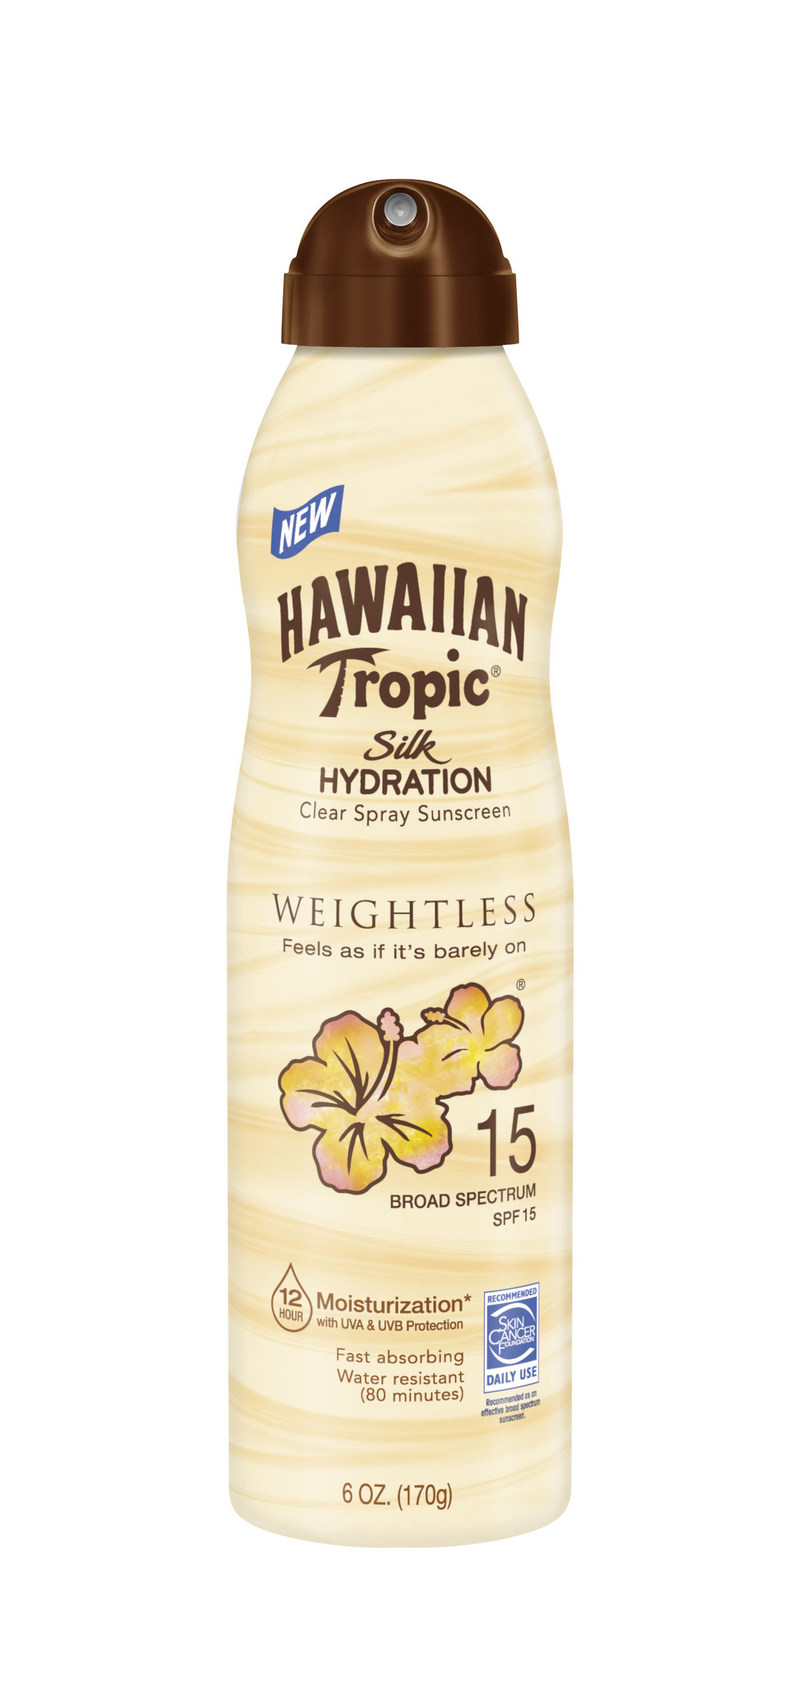 Hawaiian Tropic® Silk Hydration Weightless C-Spray SPF 15